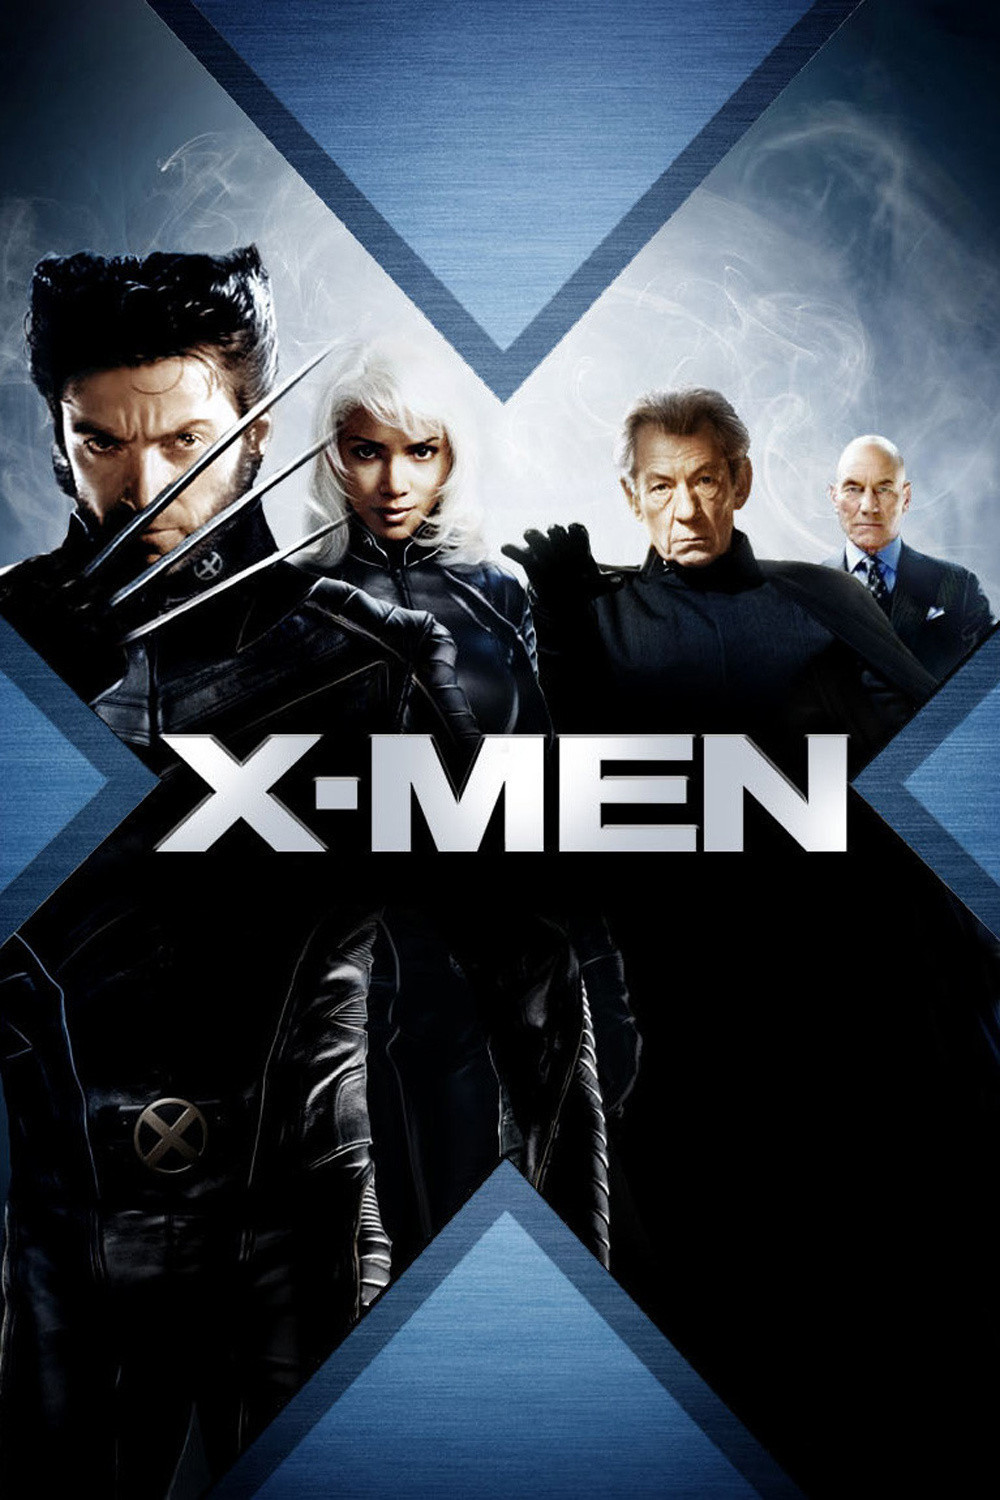 X-men 1 (2000) ταινιες online seires oipeirates greek subs